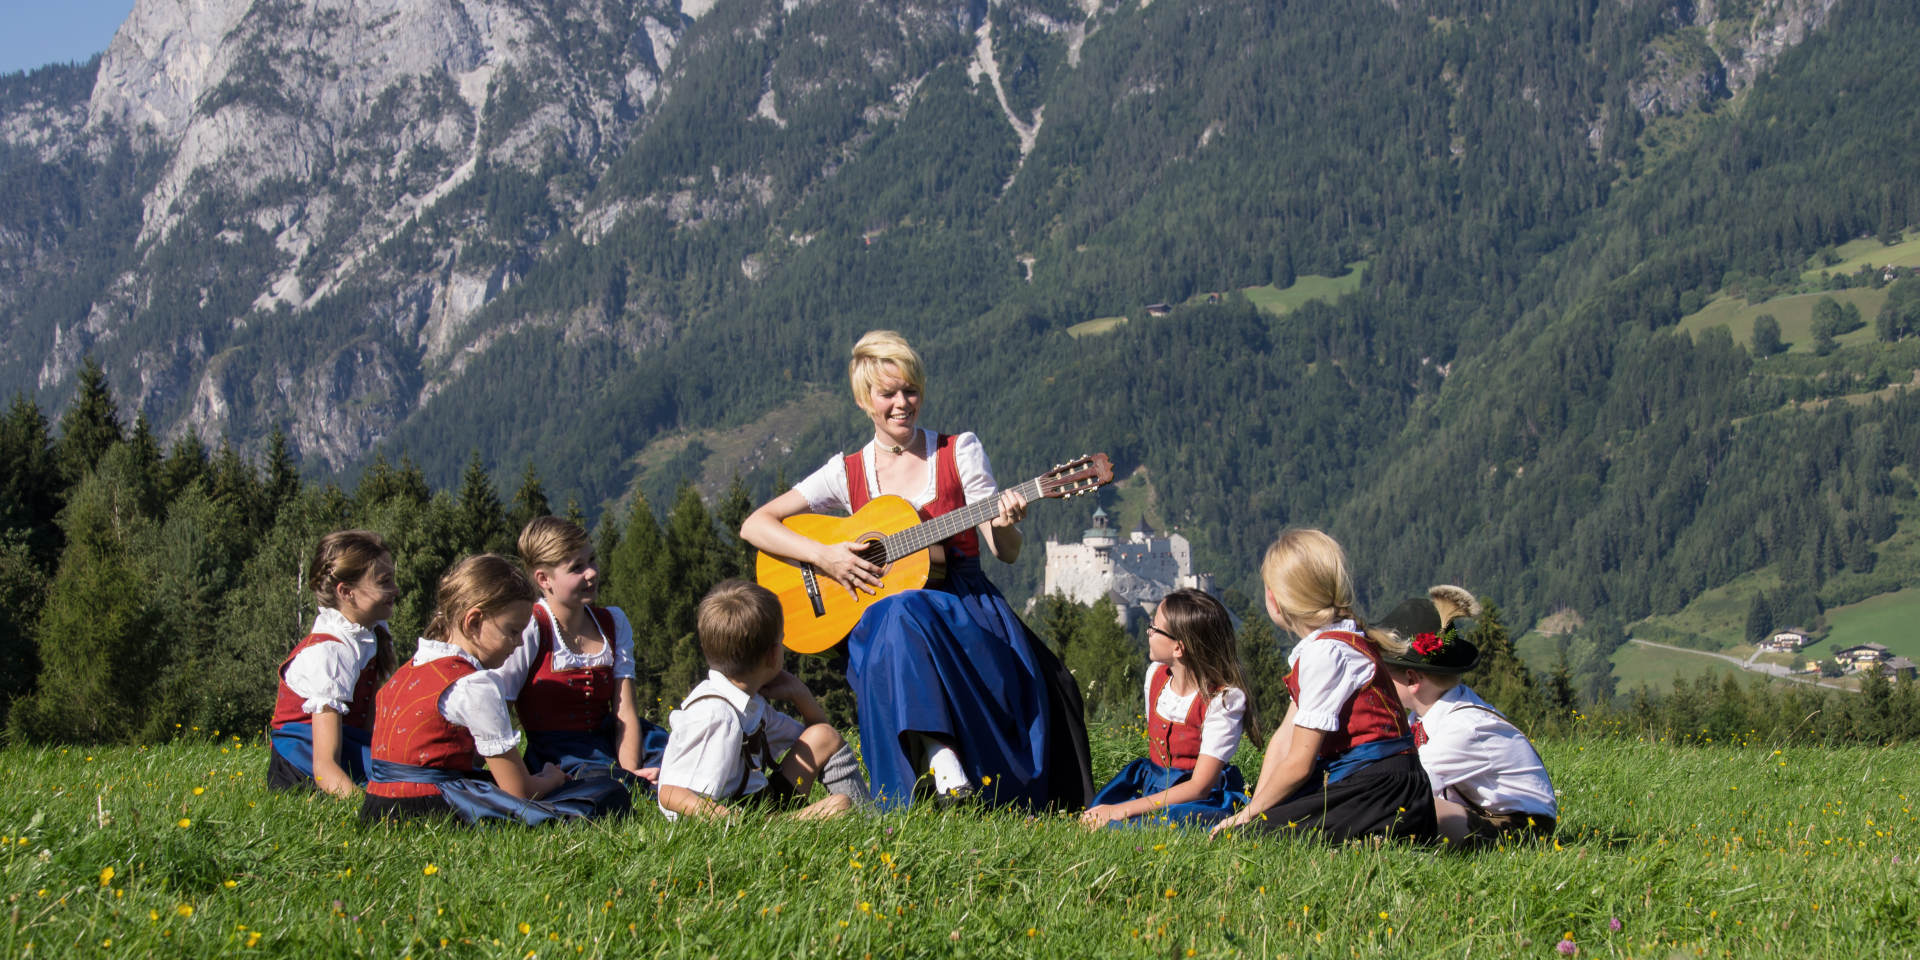 Sound Of Music Tour With Breakfast Trail Private Full Day Tour